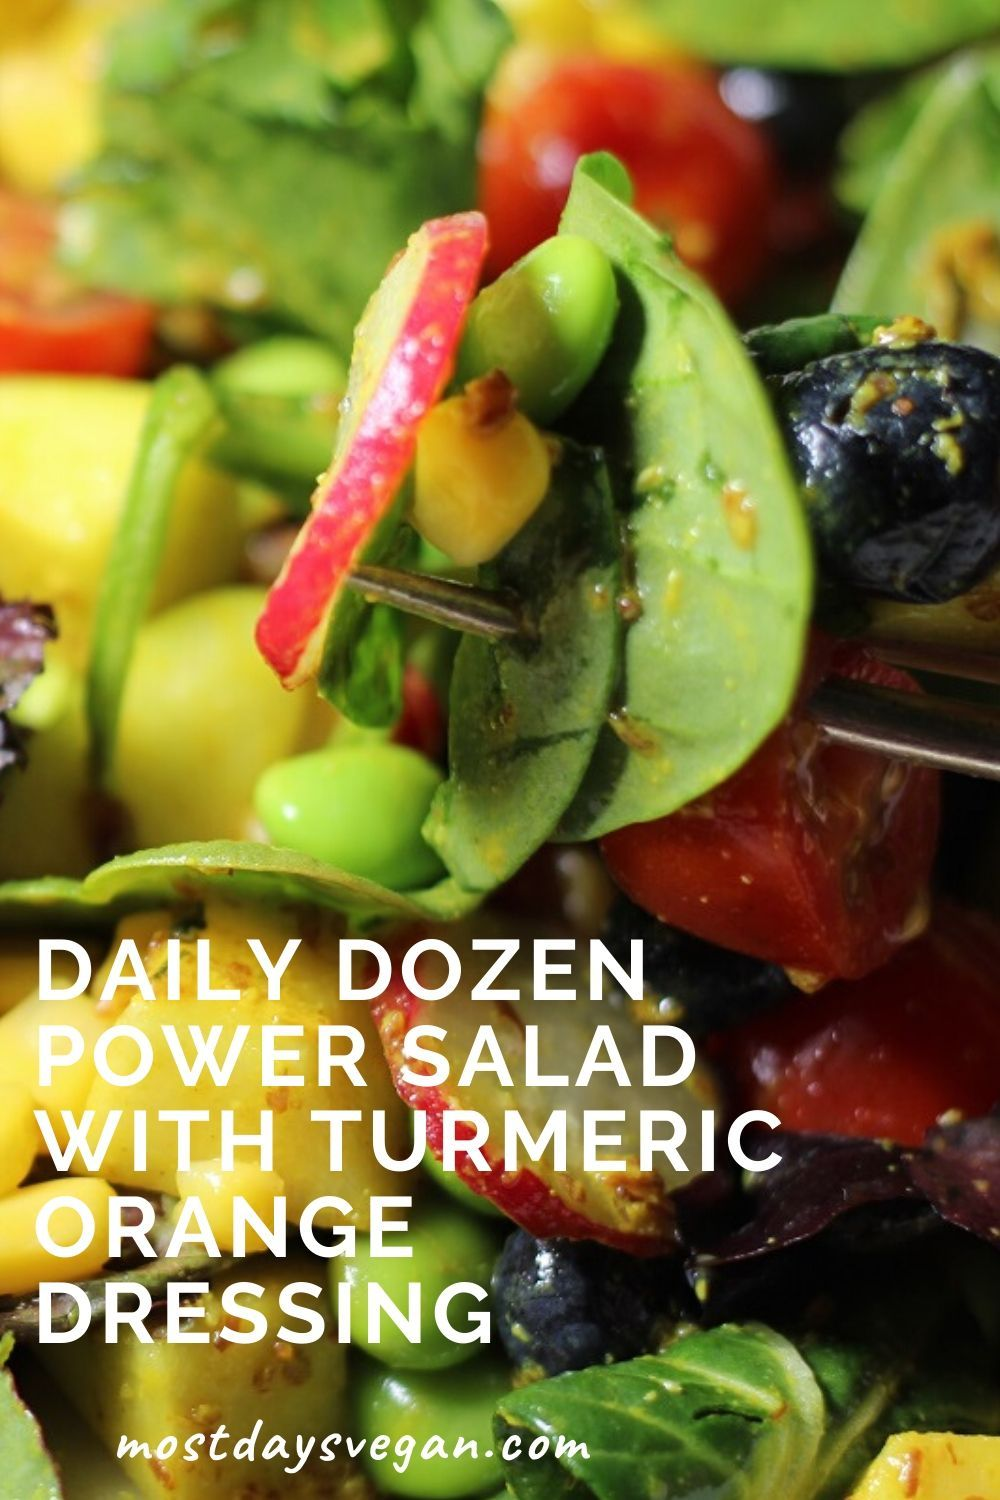 This Daily Dozen Power Salad with Turmeric Orange Dressing checks off ten of Dr. Greger's Daily Dozen boxes for you! Not only that, but it's also delicious.